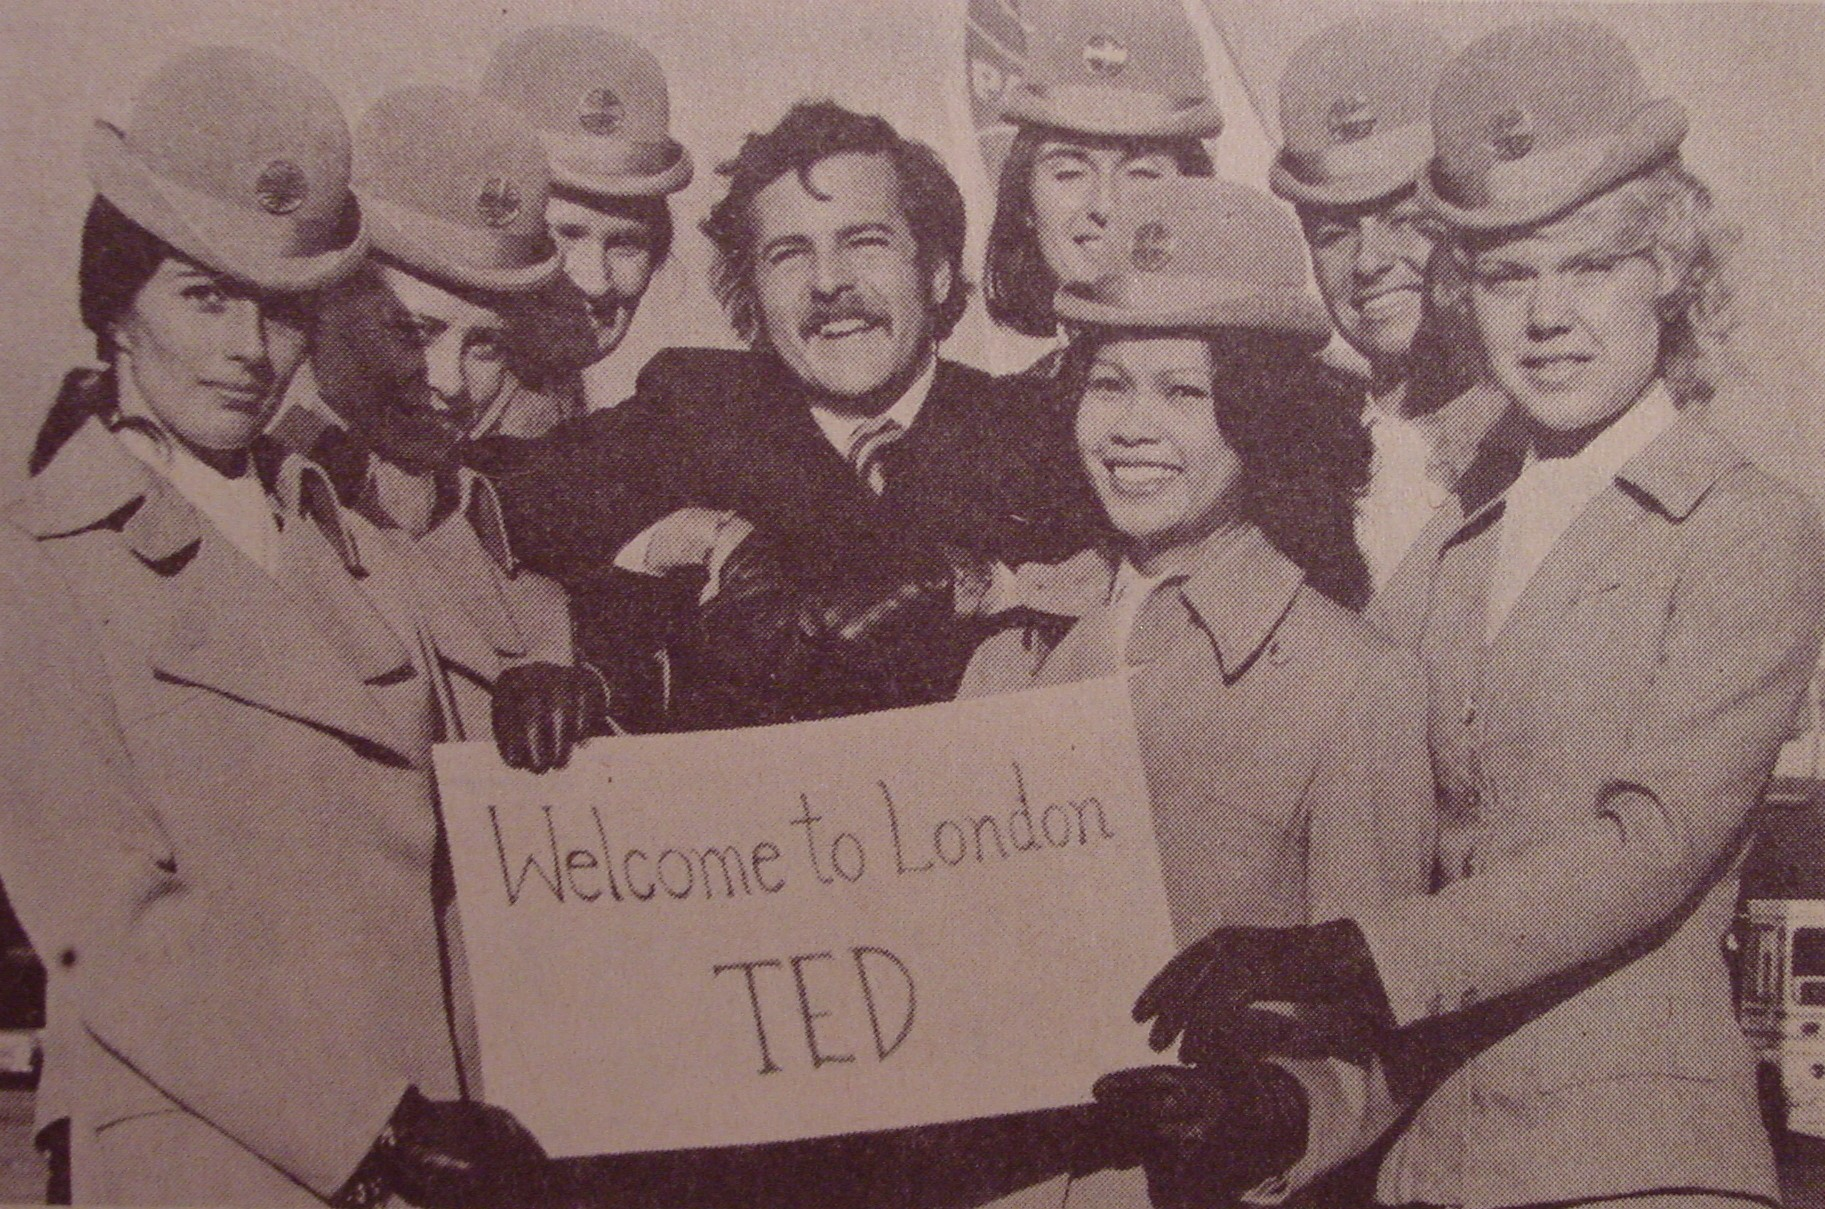 1972 When Ted Macauley became the first male flight attendant at the London base he was given a warm welcome by his female colleagues.